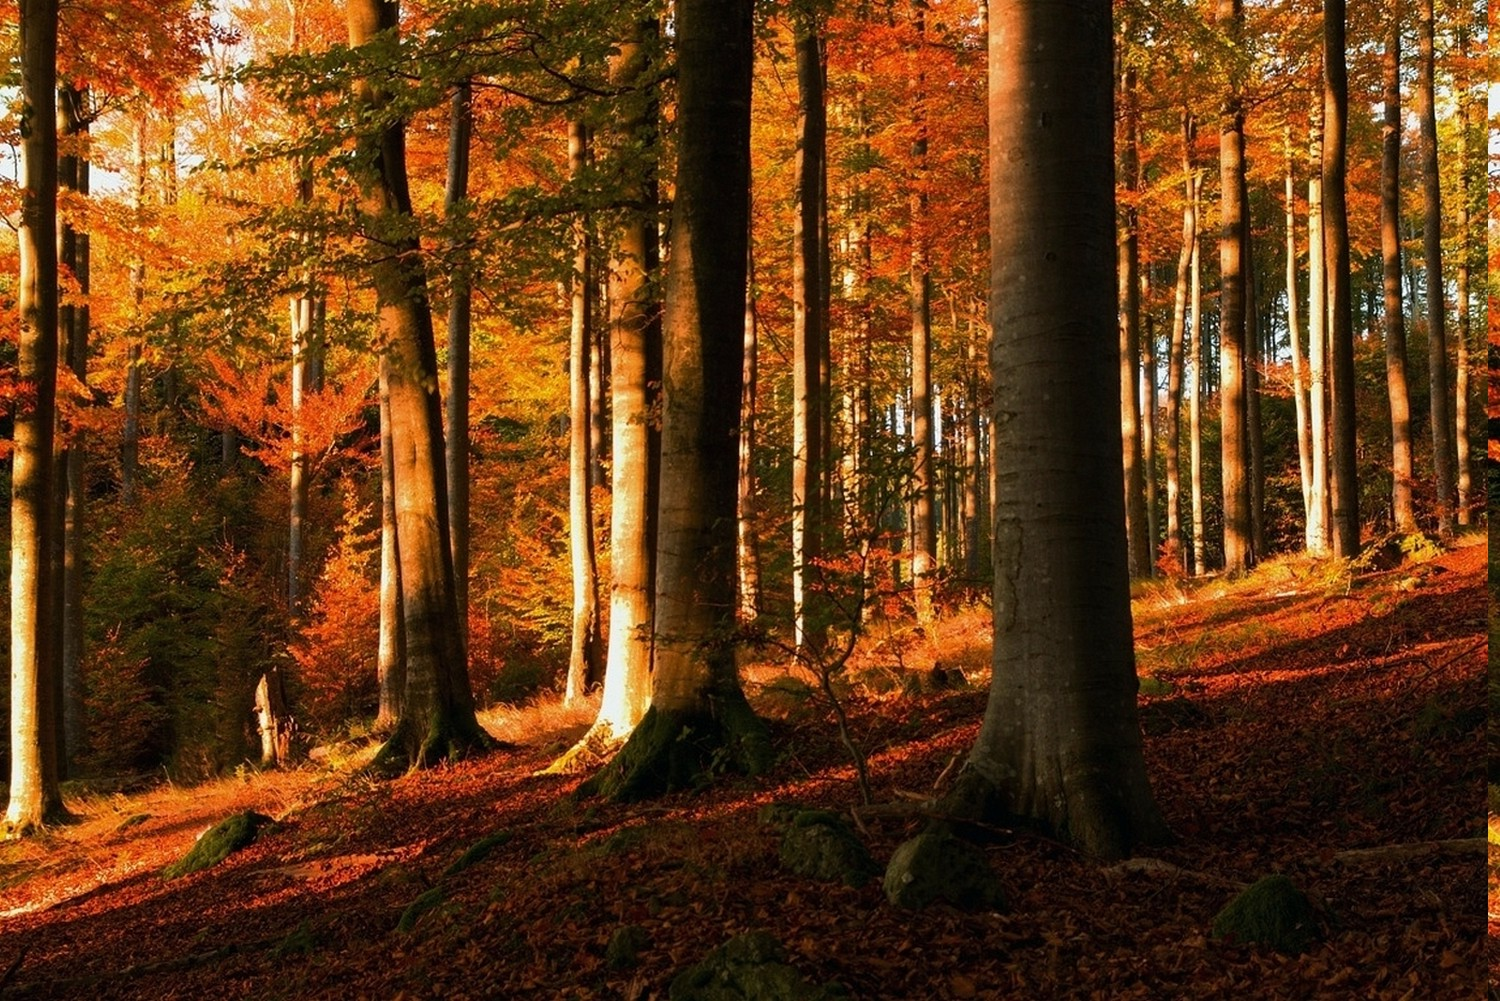 Cosmos Quotes Wallpaper Sunset Forest Fall Trees Leaves Hill Moss Shrubs